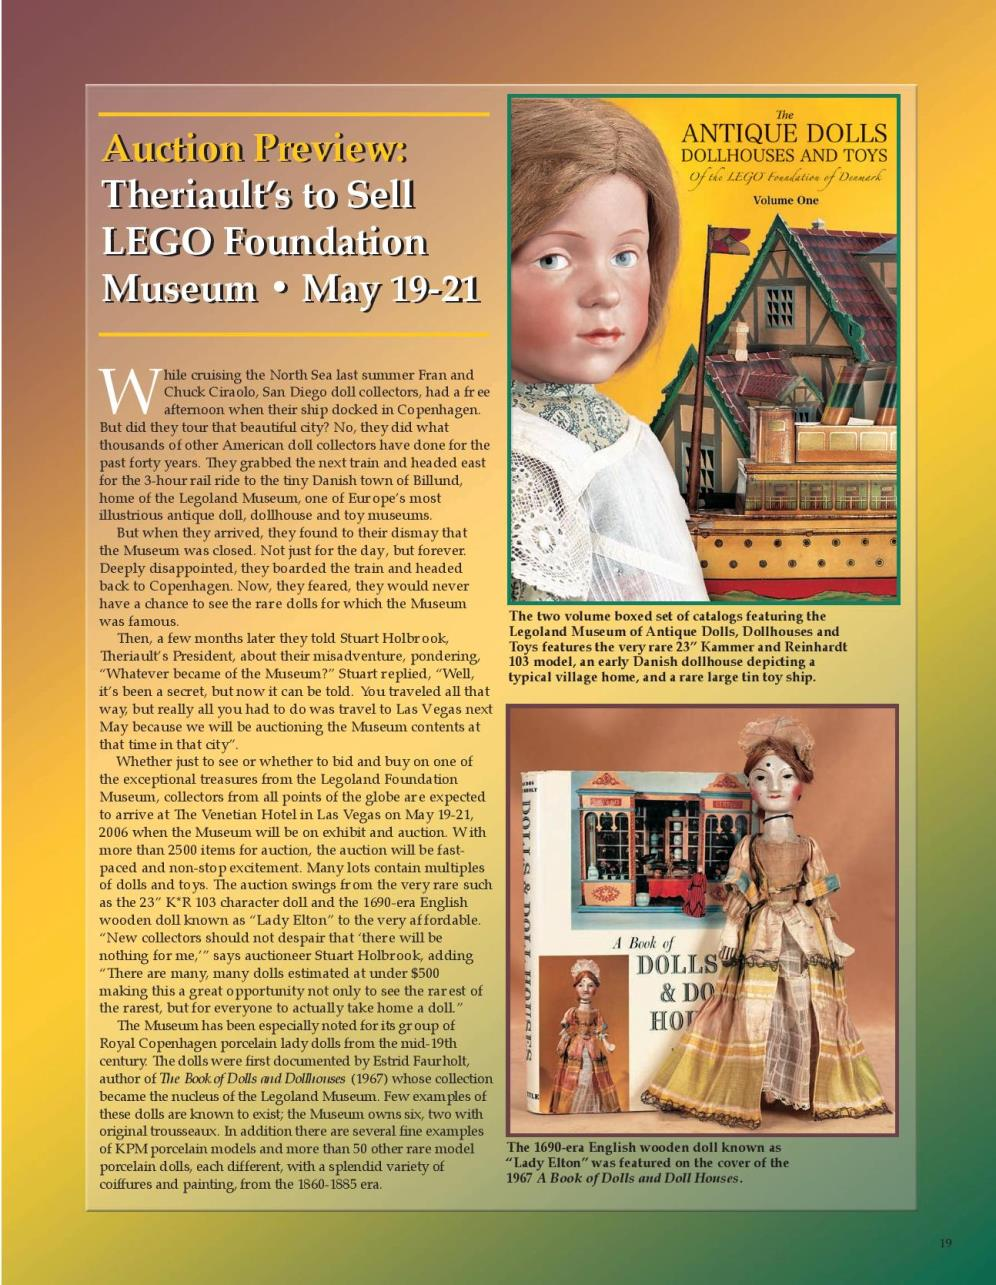 Theriault's to Sell LEGO Foundation Museum • May 19-21